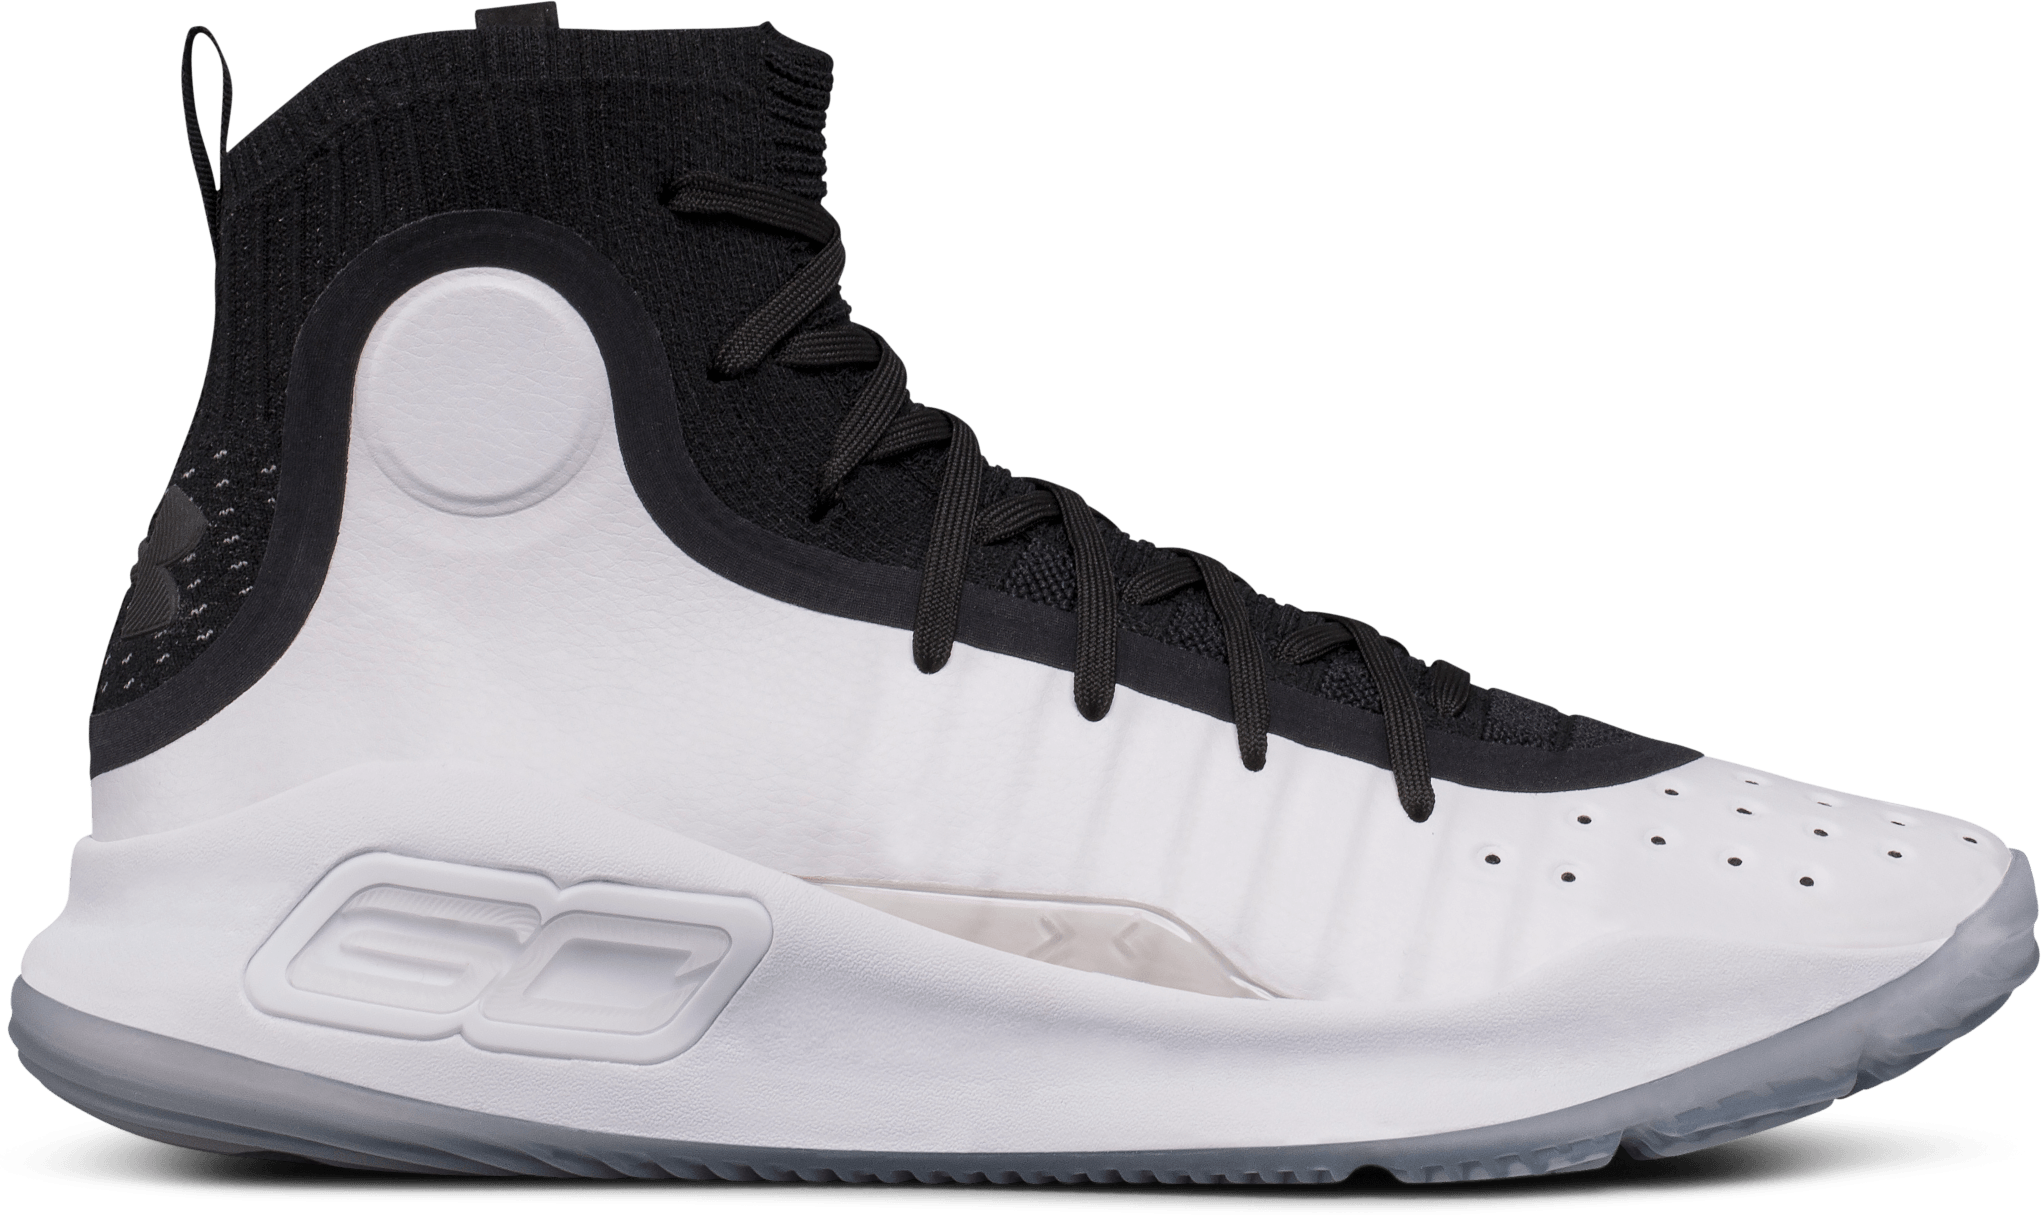 Under Armour Curry 4 Performance Review